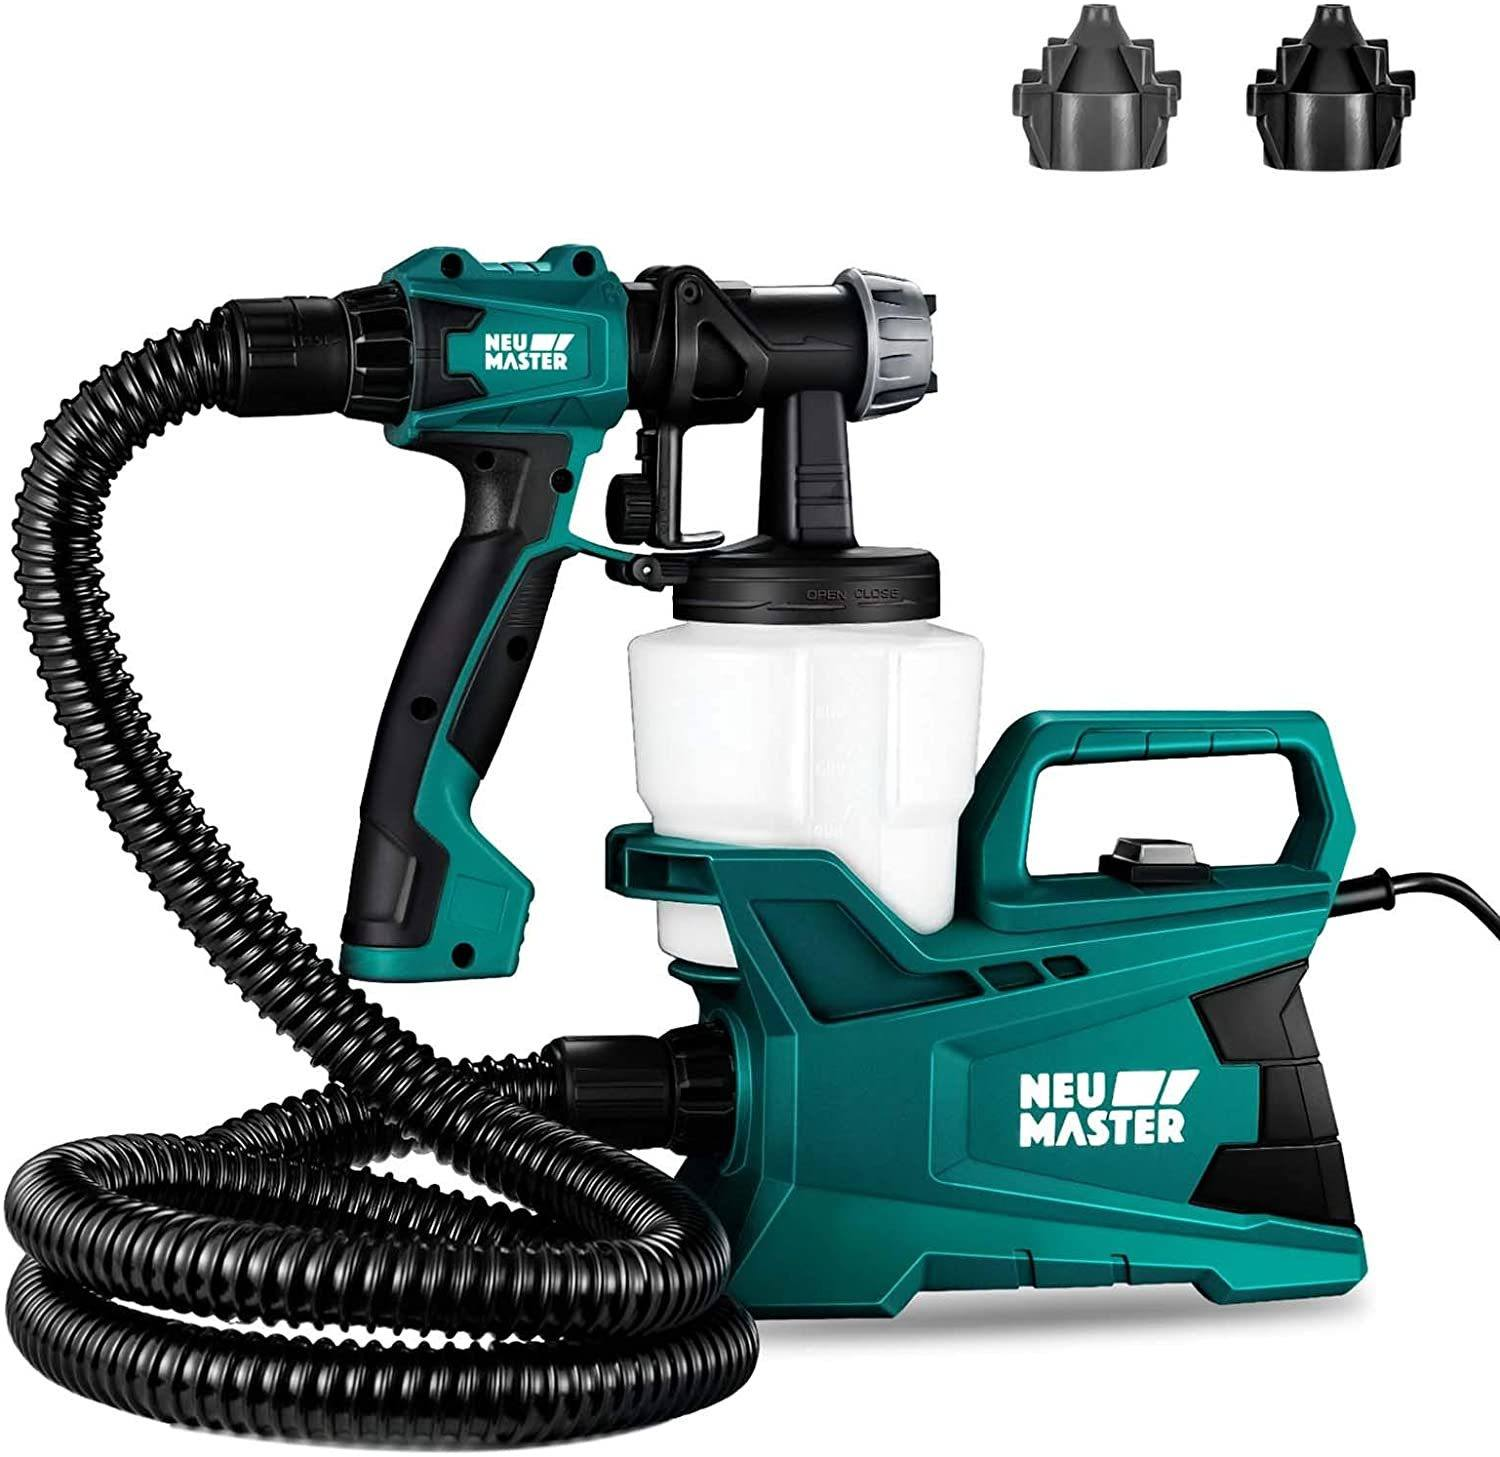 NEU MASTER High Power 600-Watt HVLP Spray Gun